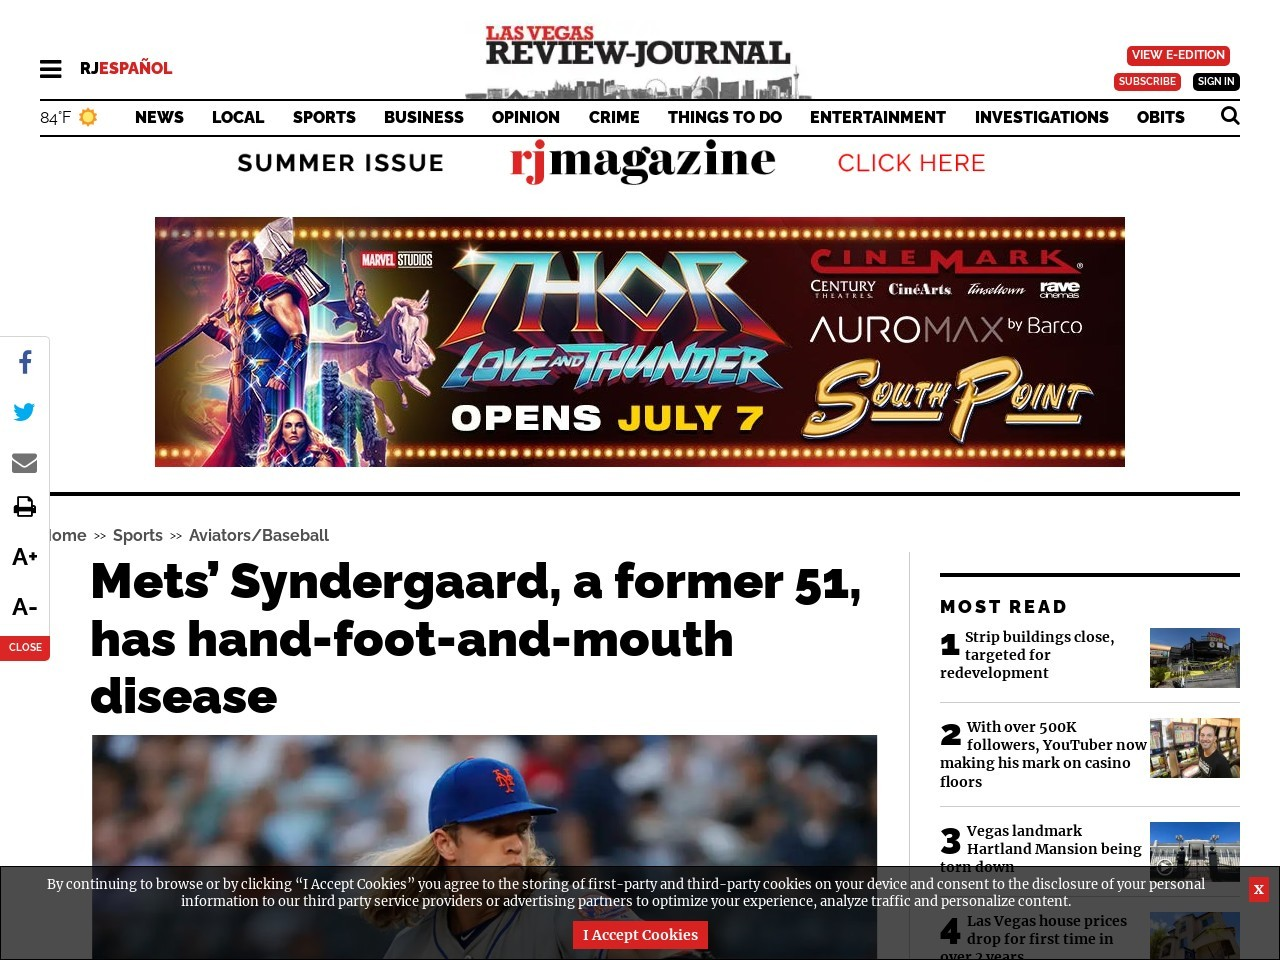 Mets' Syndergaard, a former 51, has hand-foot-and-mouth disease